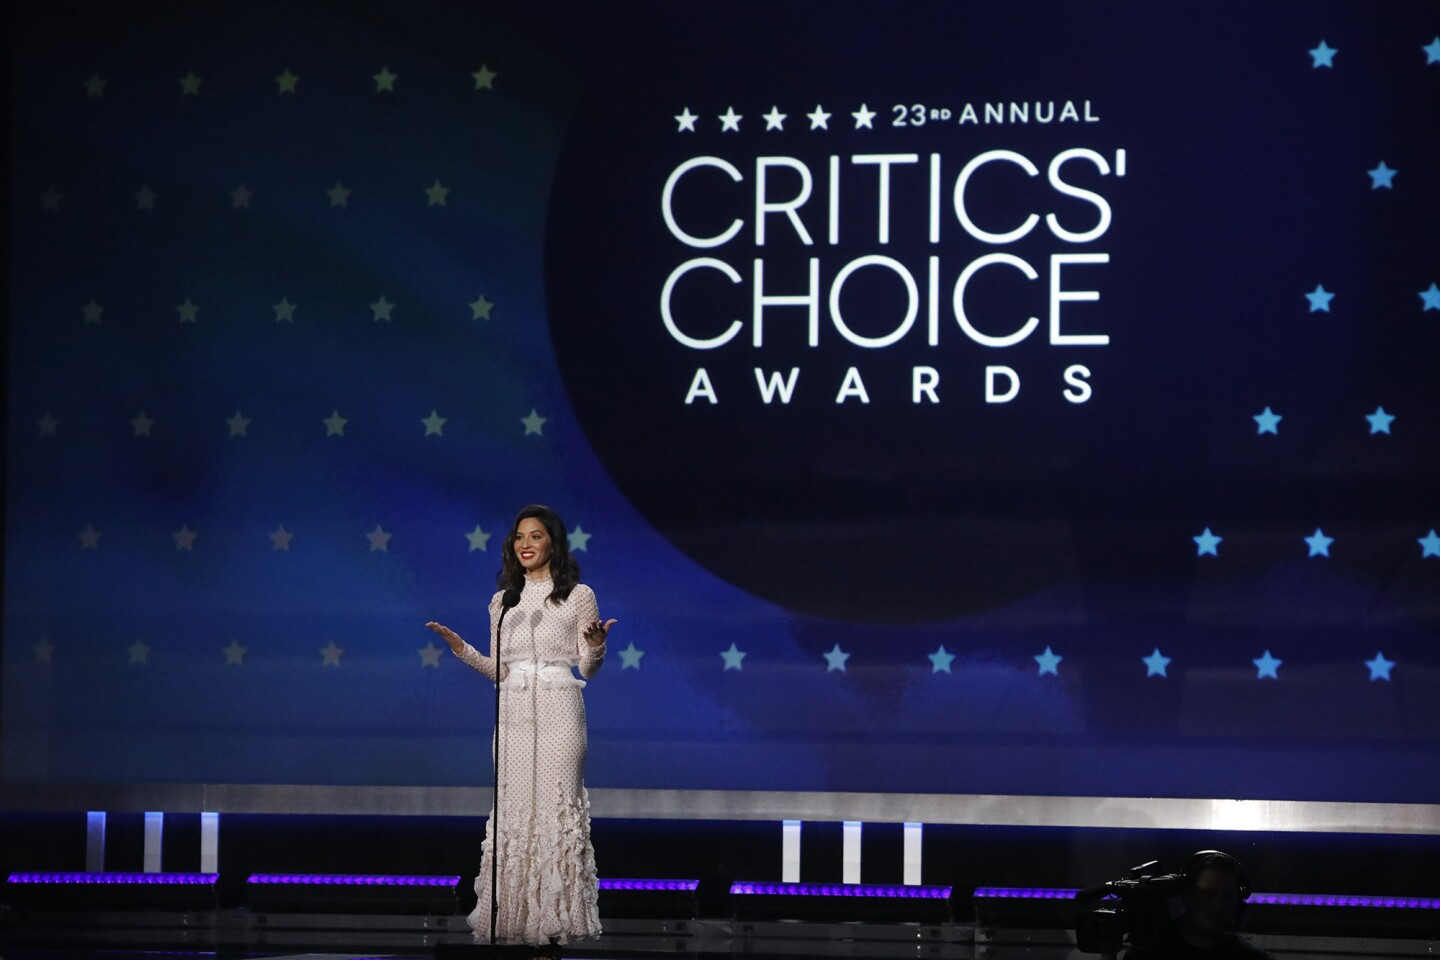 Actress Olivia Munn makes her introduction as host of the 23rd Critics' Choice Awards inside the Barker Hangar in Santa Monica.